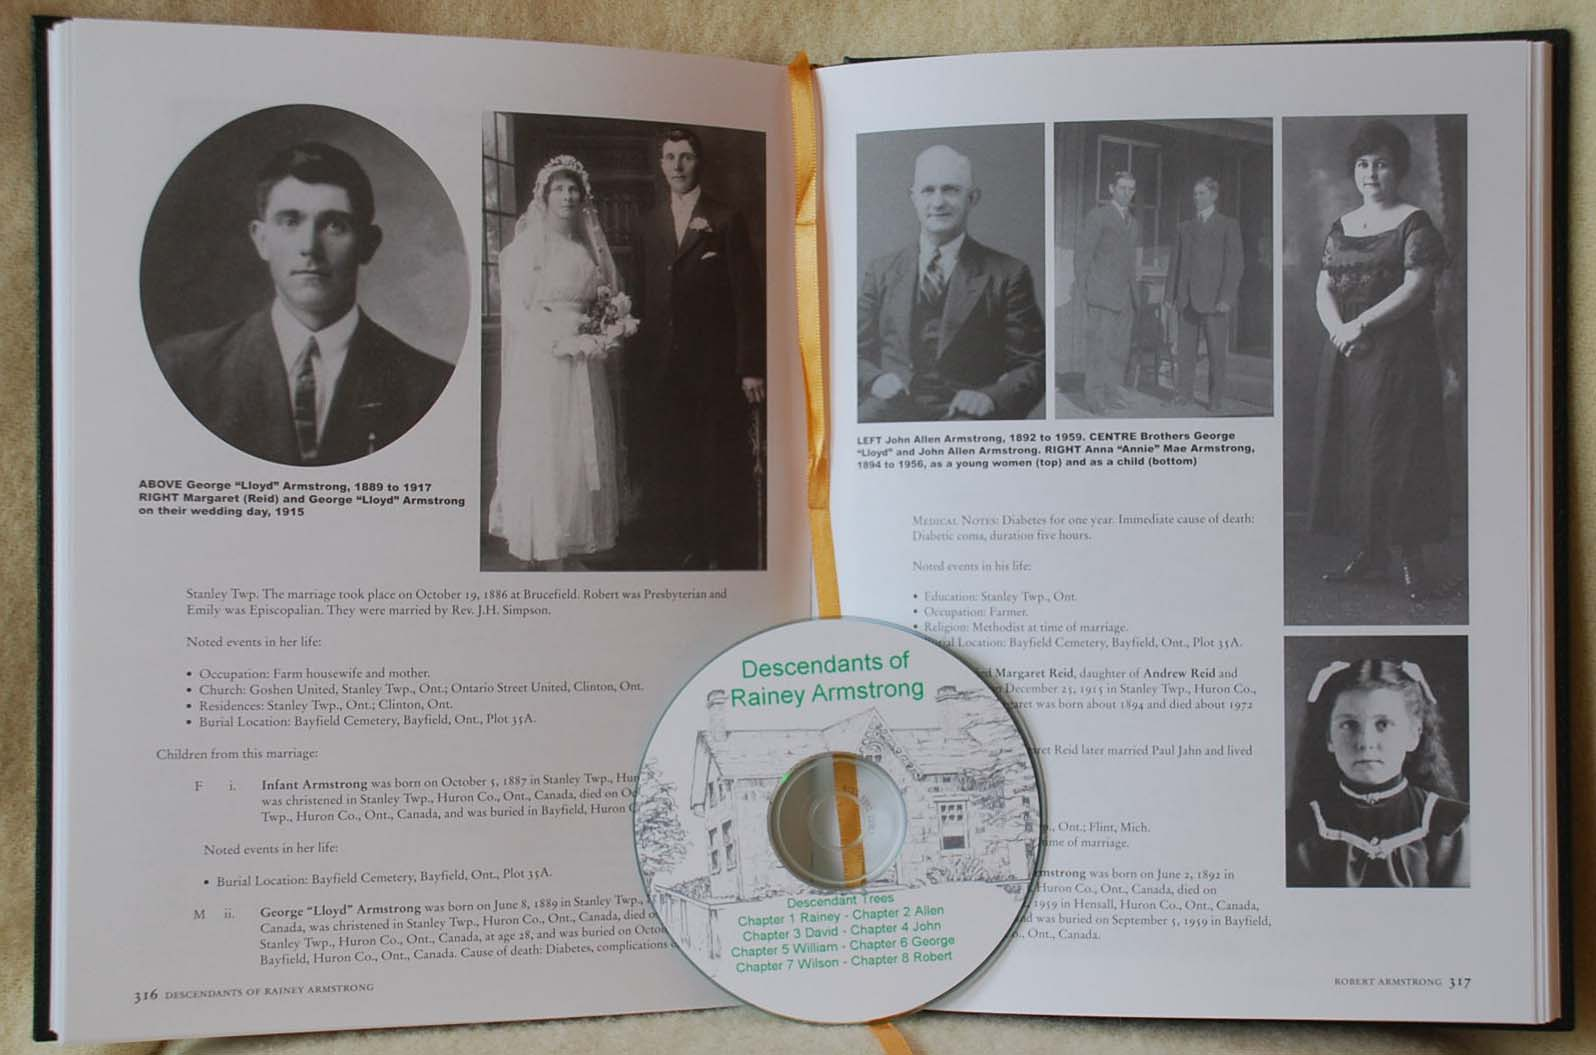 descendants of rainey armstrong family history book